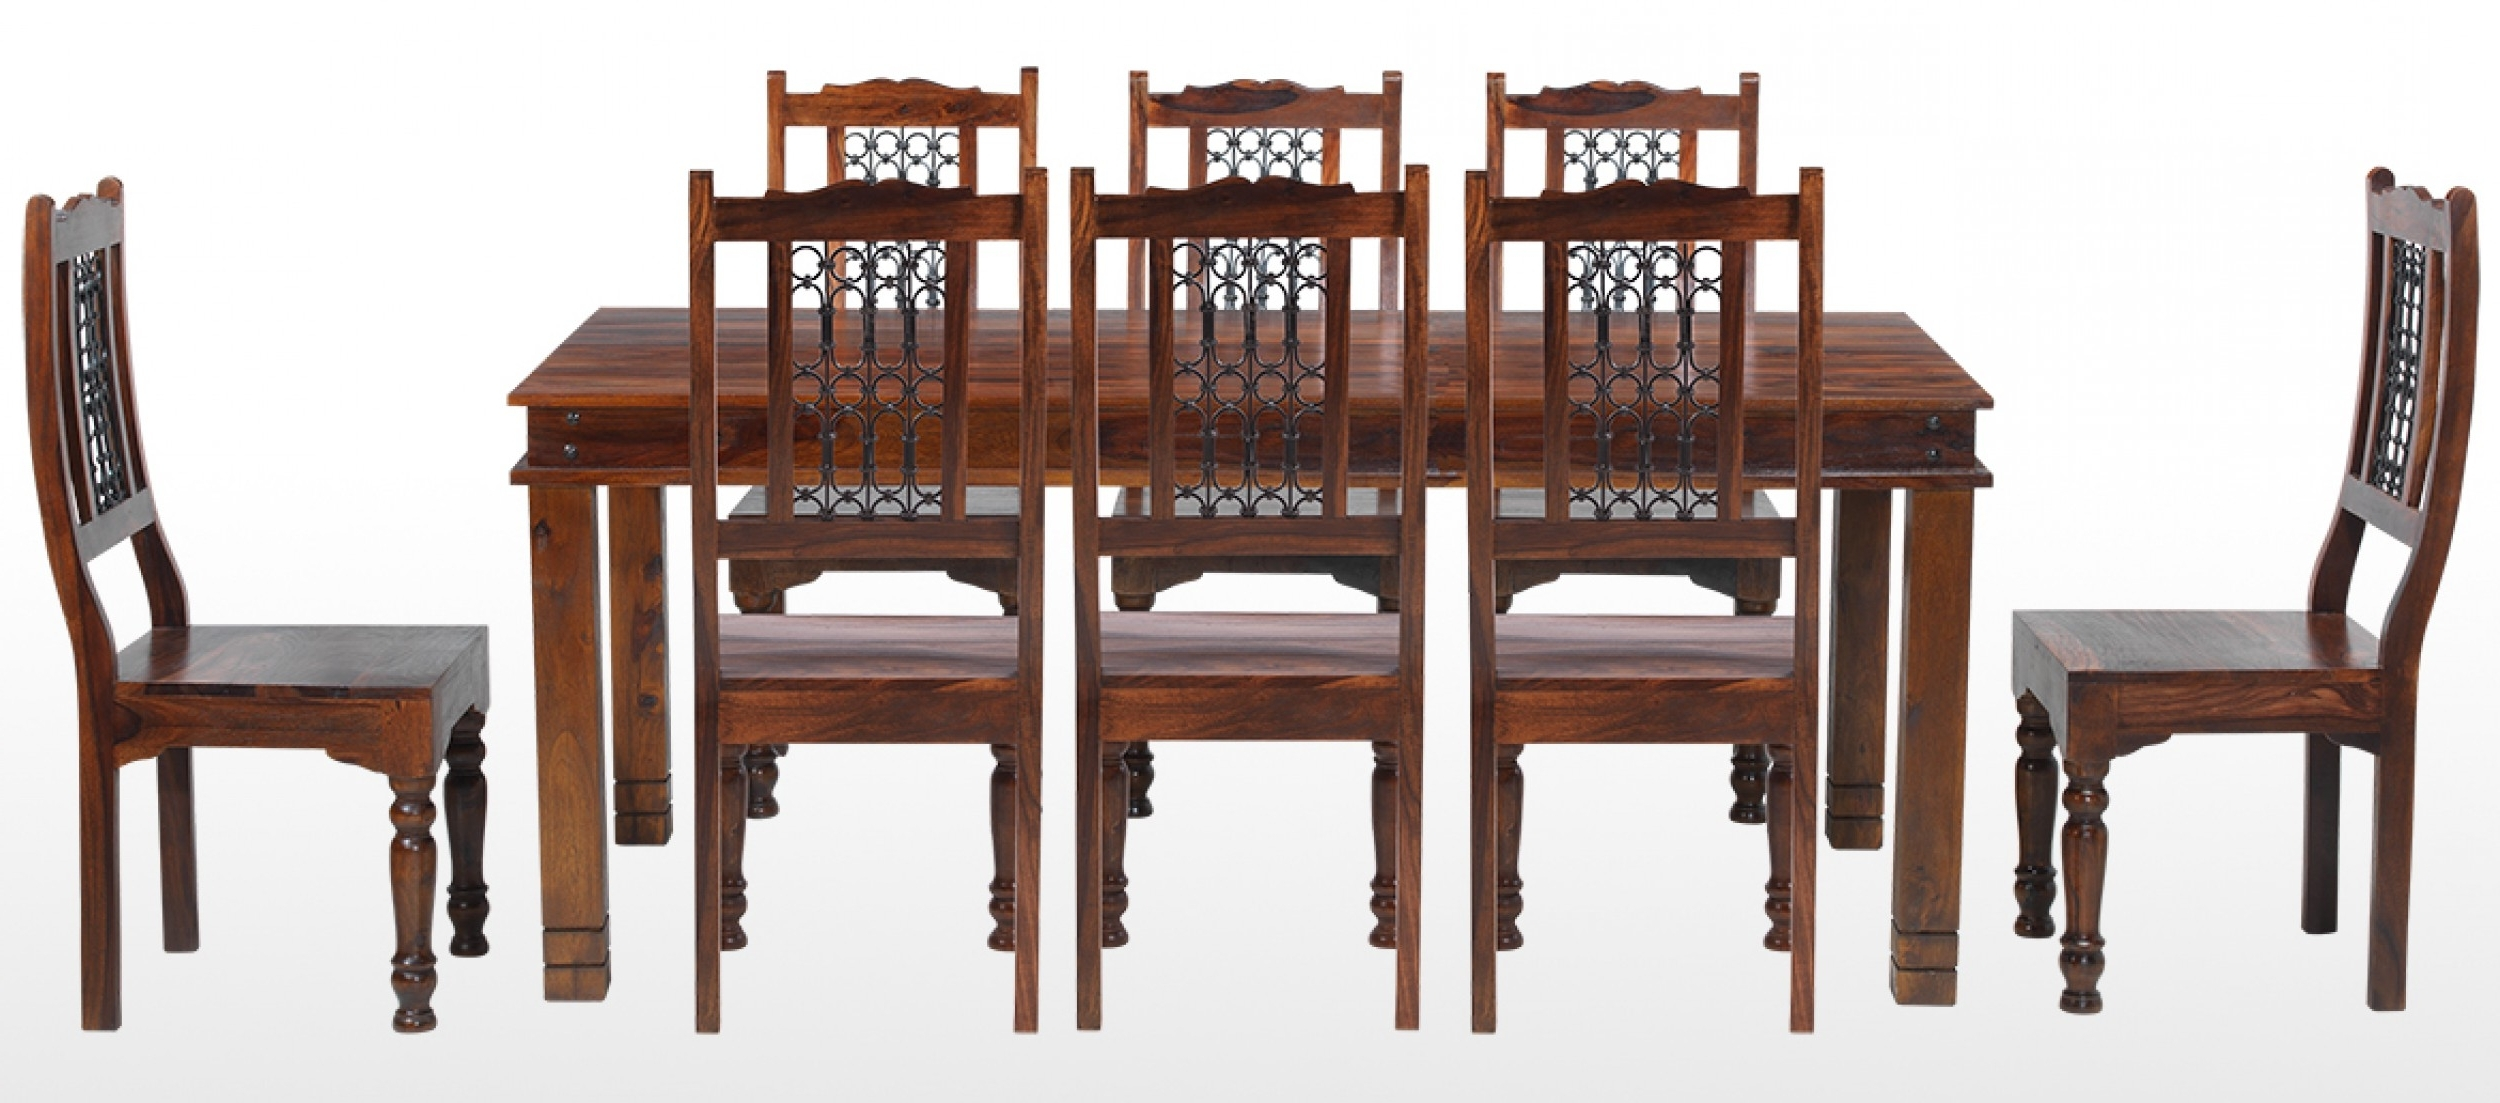 Quercus Living in Dining Tables With 8 Chairs